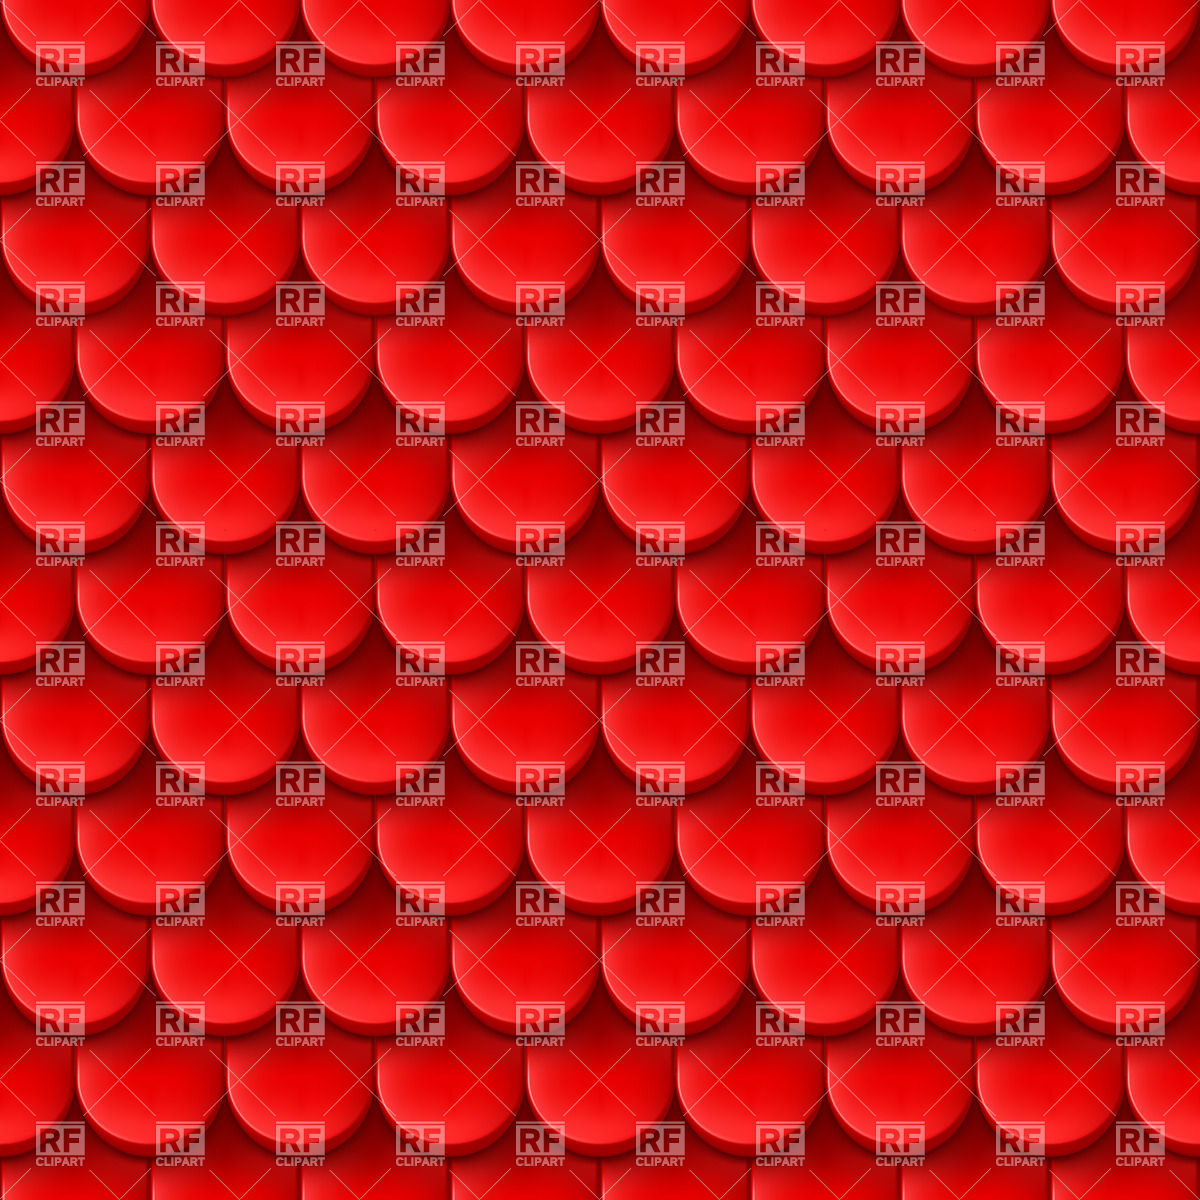 Red background with roof tile pattern Vector Image #20864.